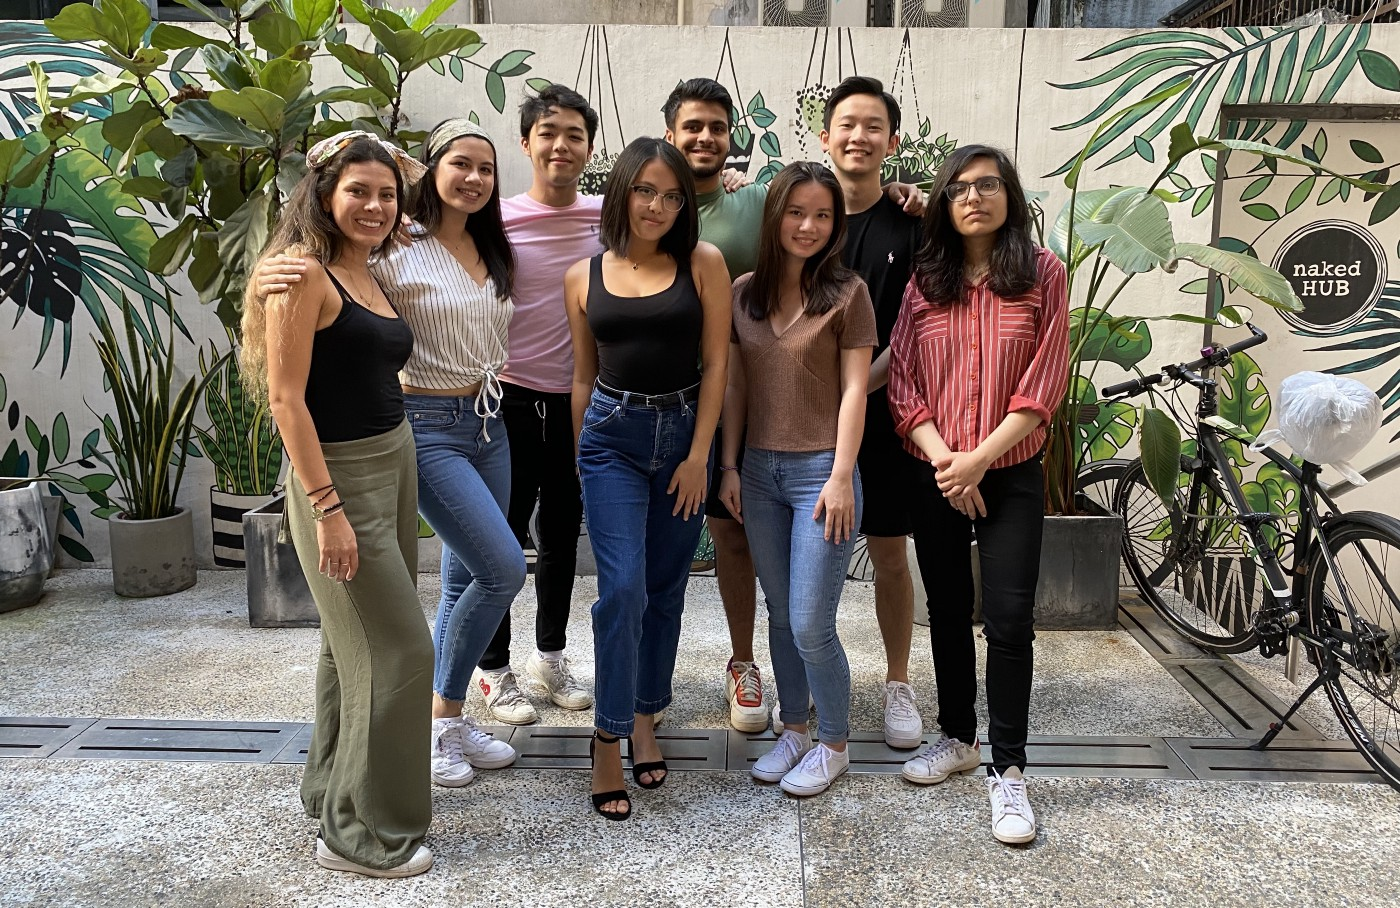 The team at Happyer has grown significantly with the addition of the 8 new interns who are adding unique skills and contributing to every aspect across the board.